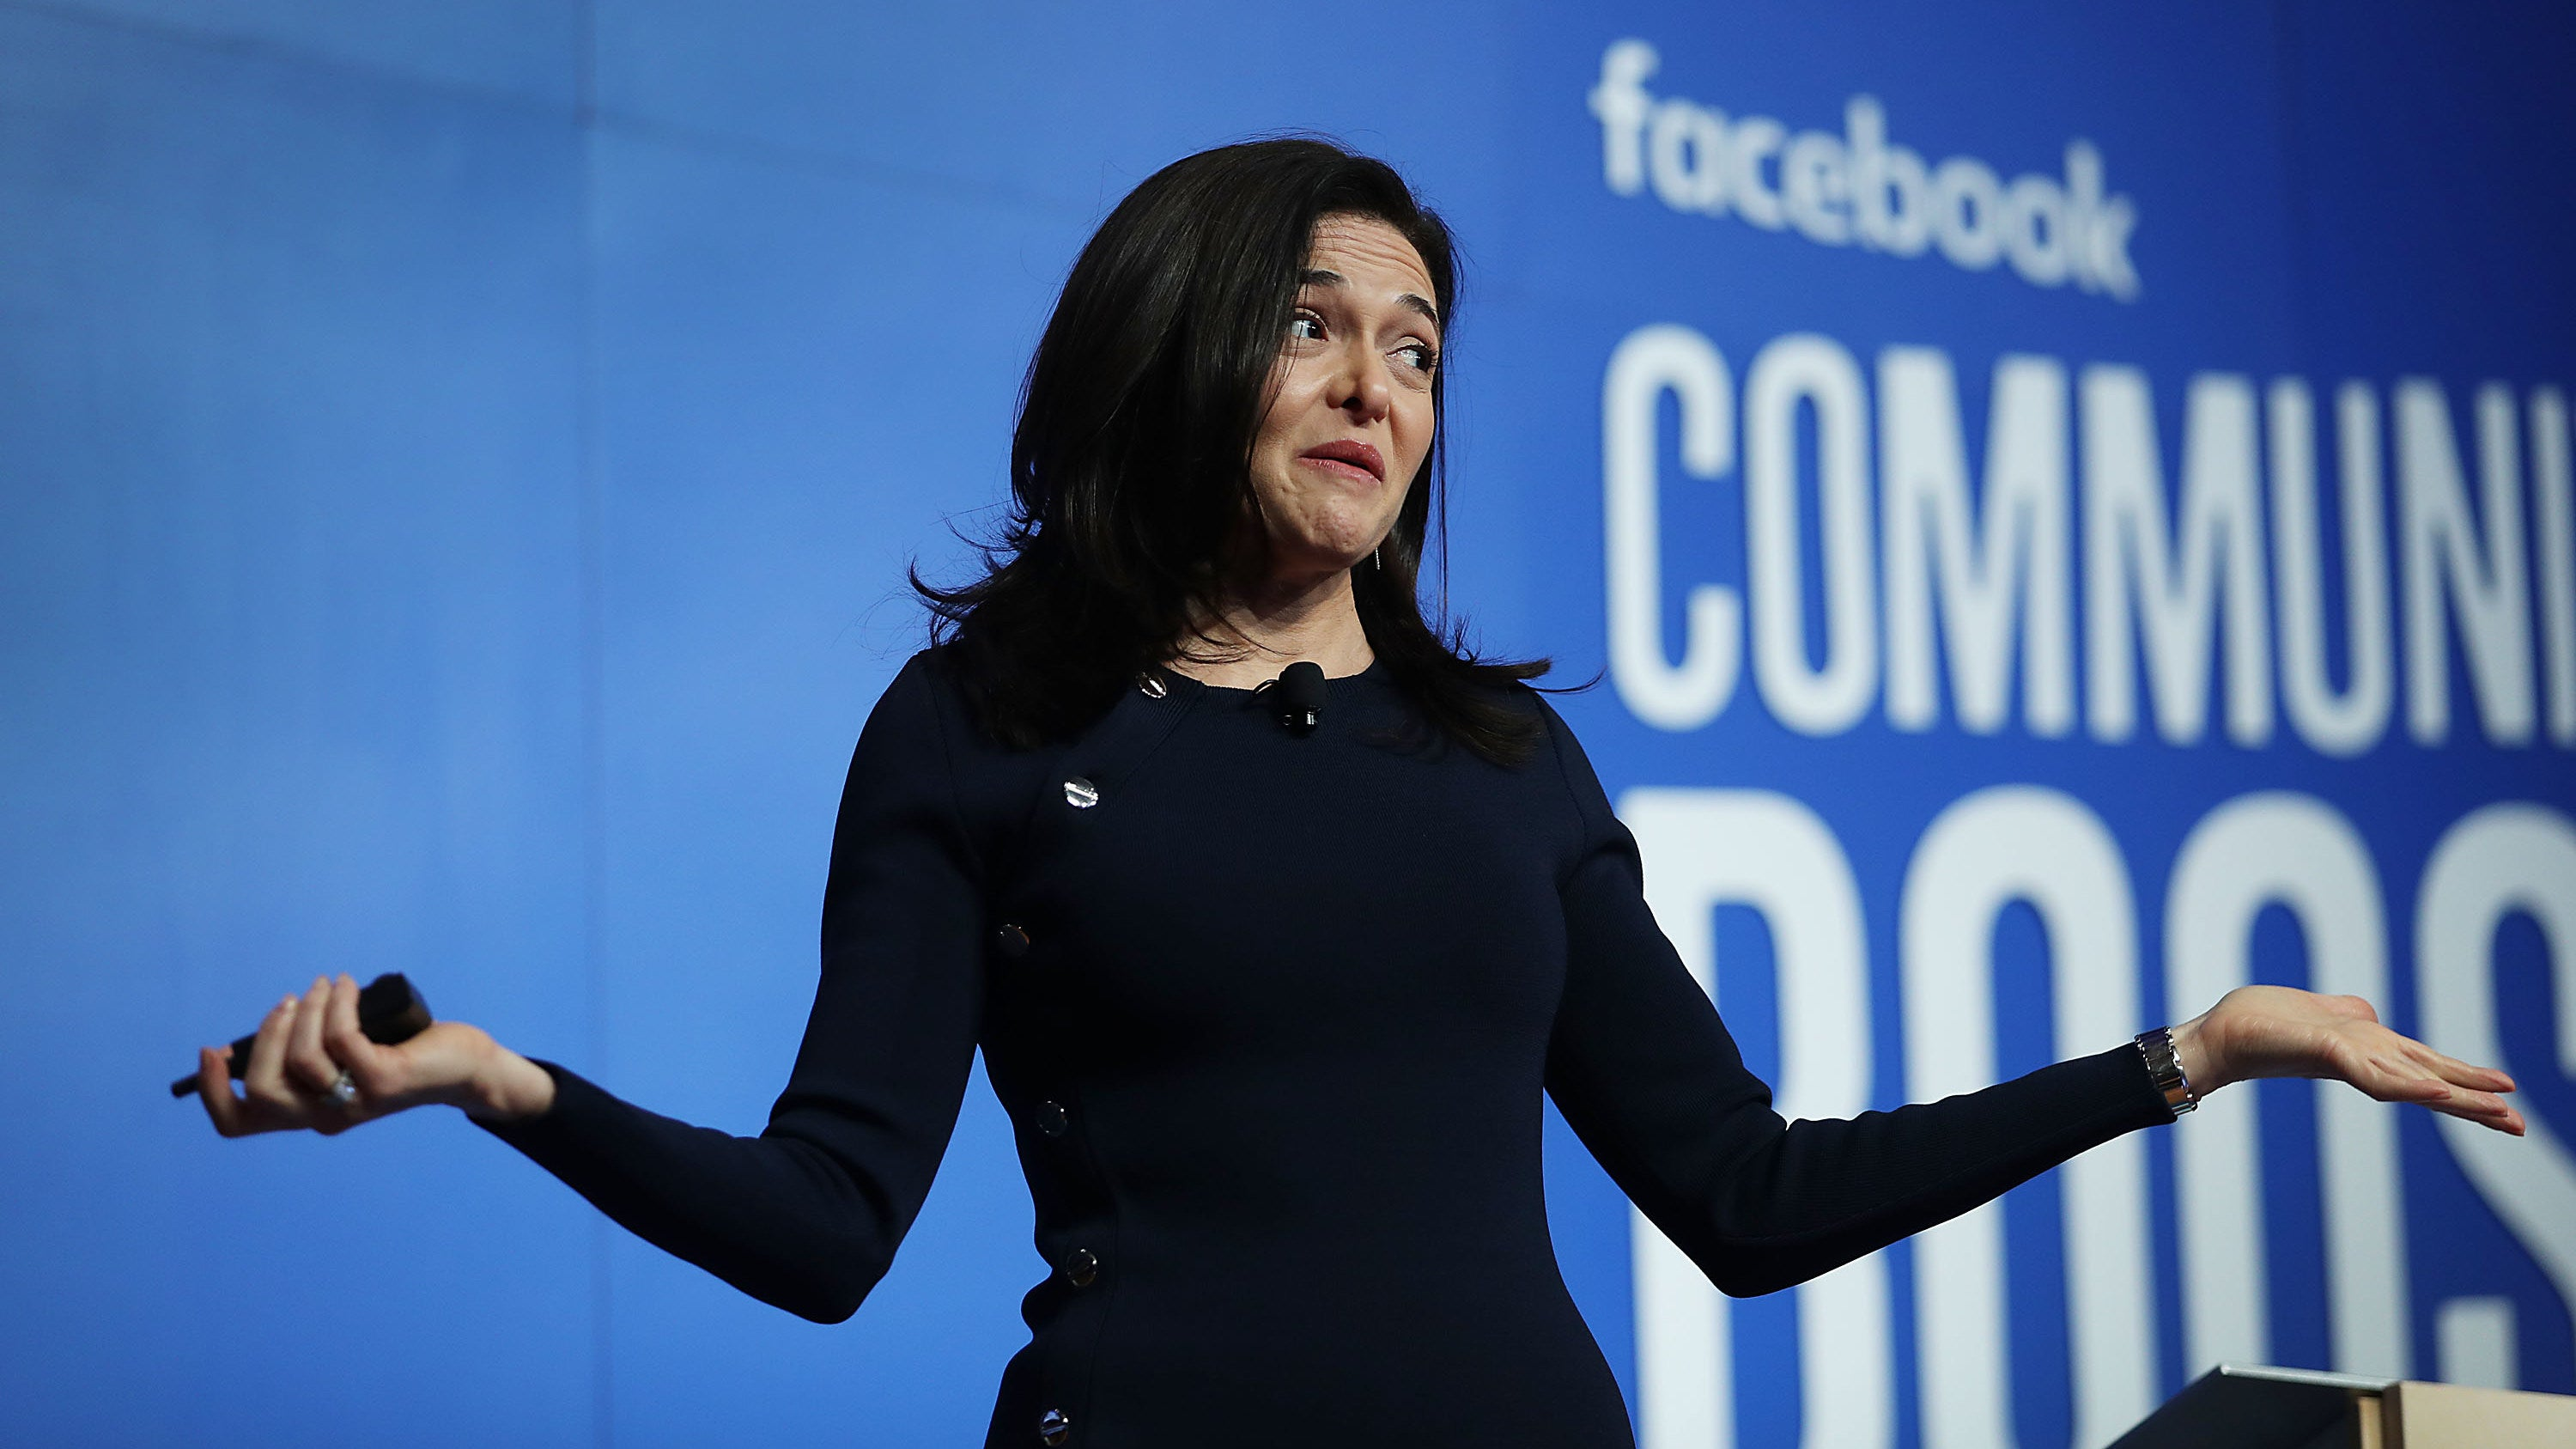 Facebook's Sheryl Sandberg Hears Concerns Of Civil Rights Leaders But Offers No Promises